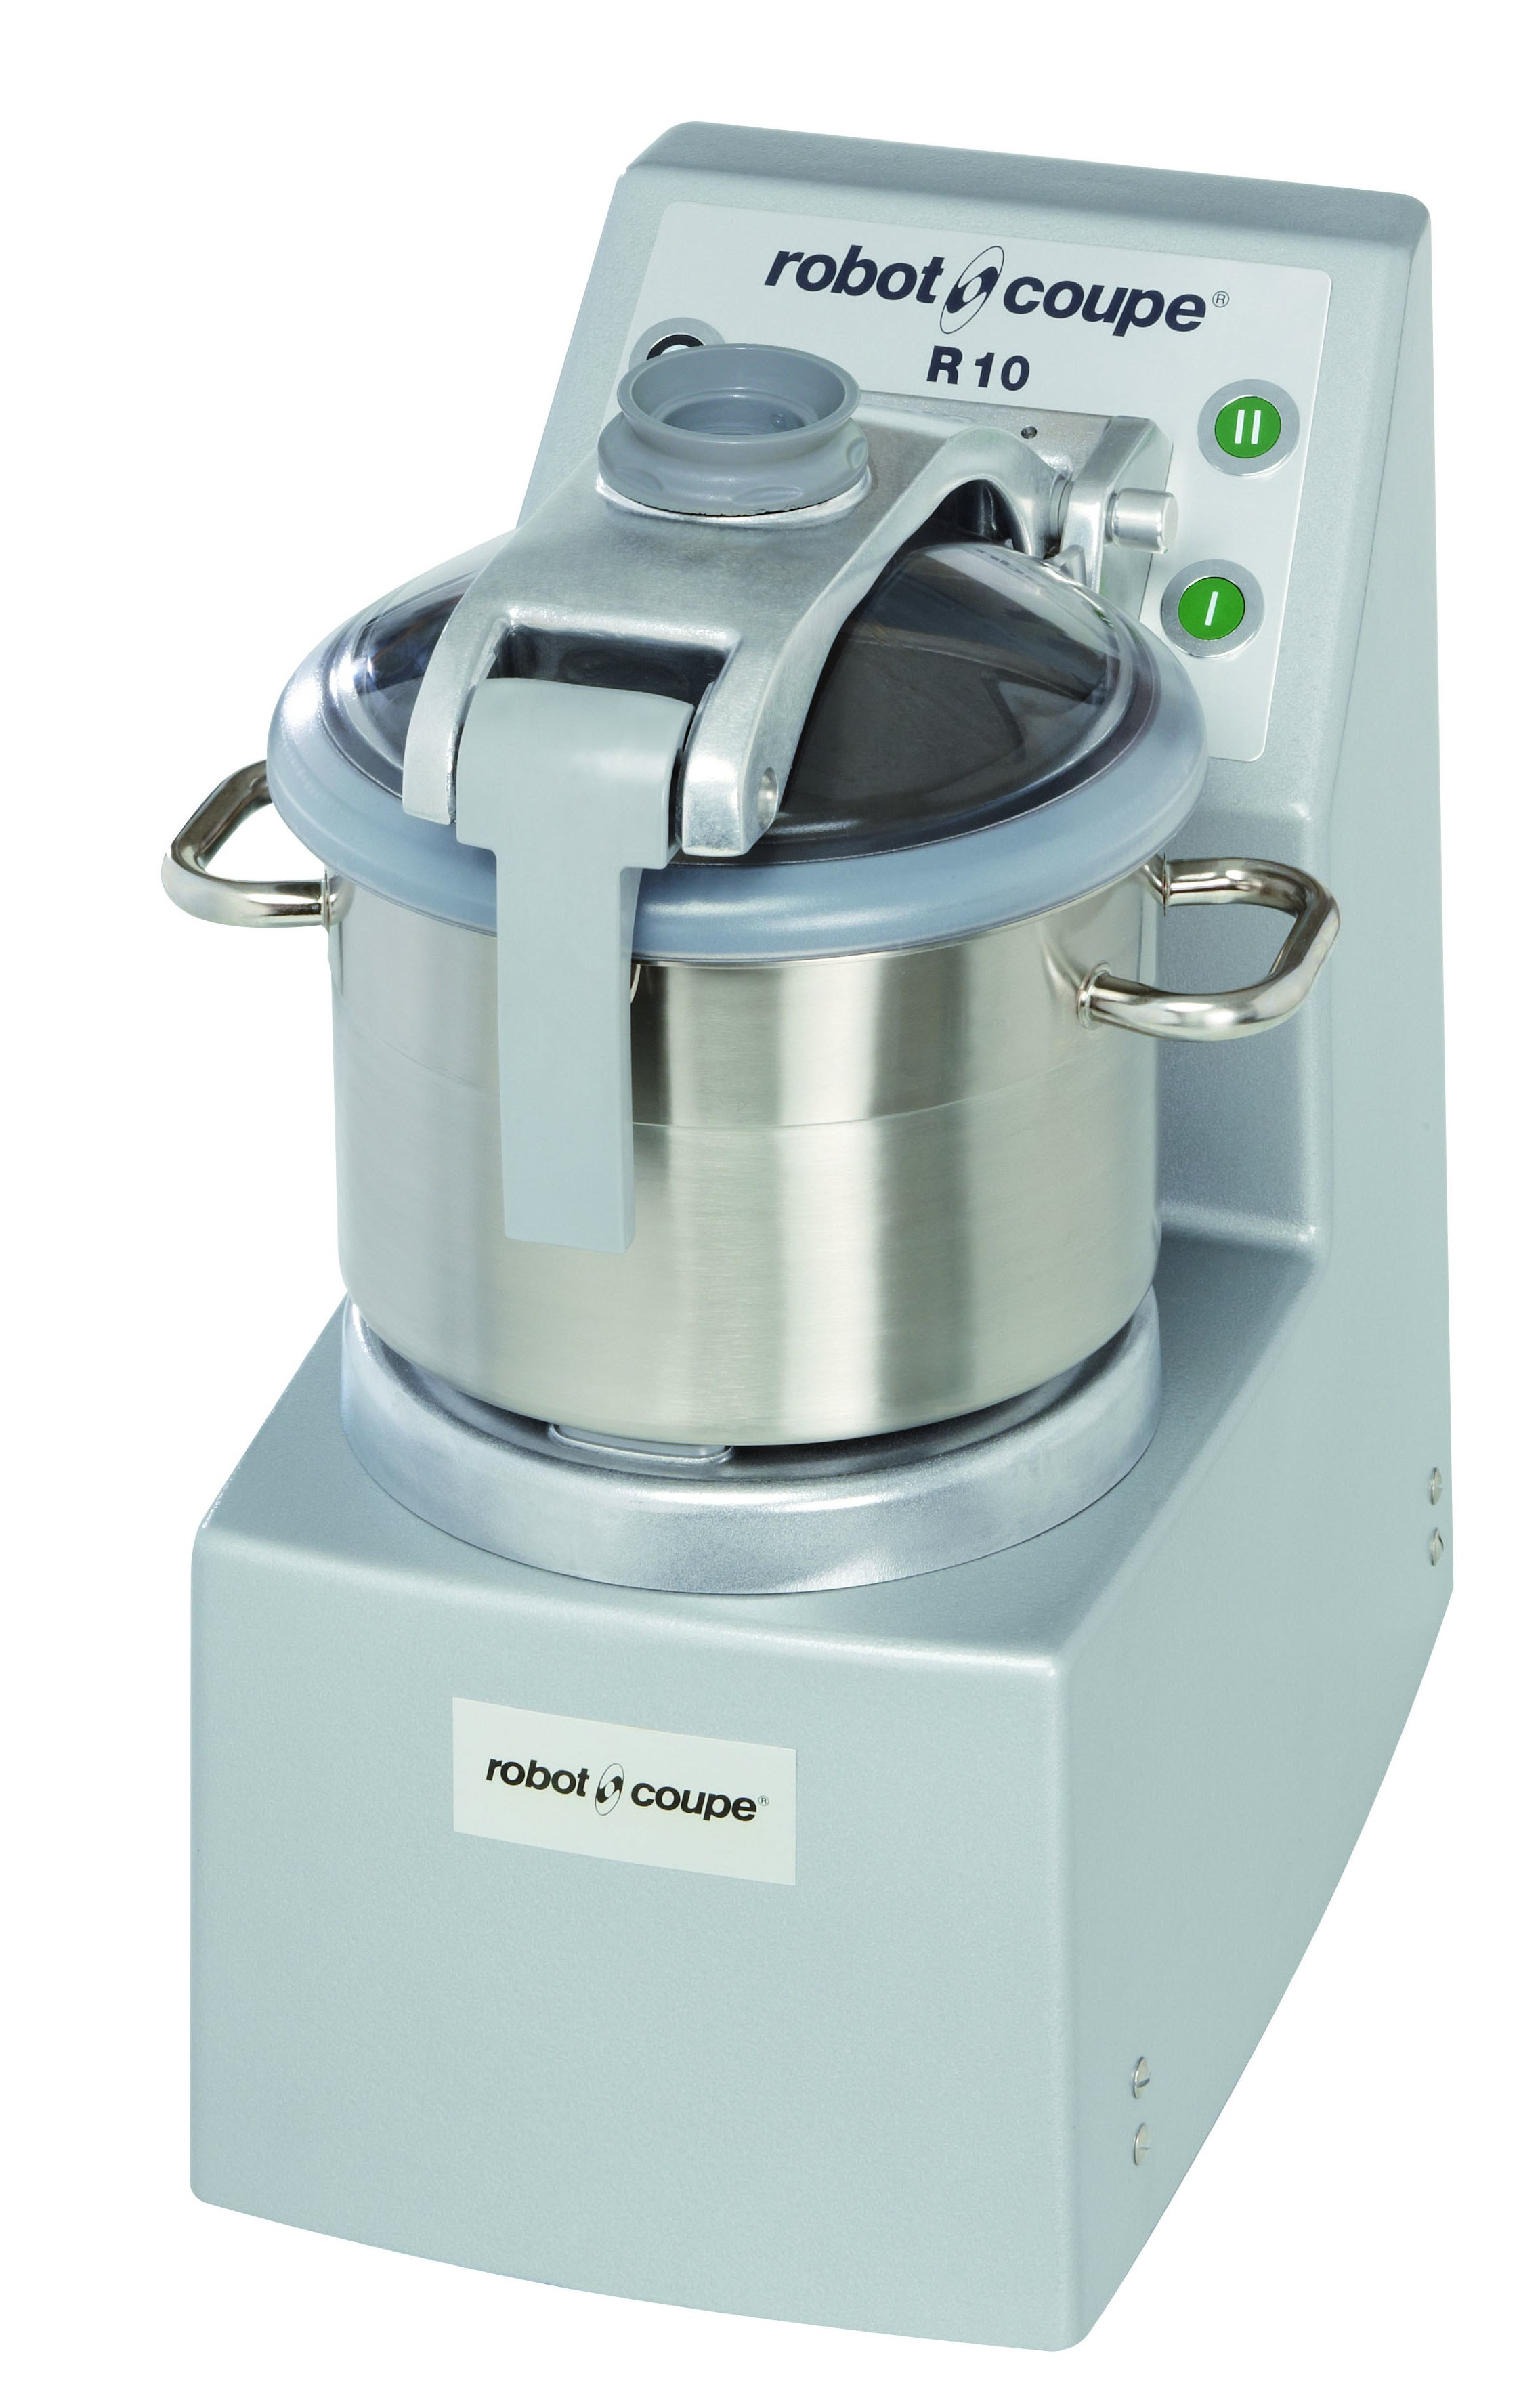 Image of Robot Coupe R10 Cutter Mixer